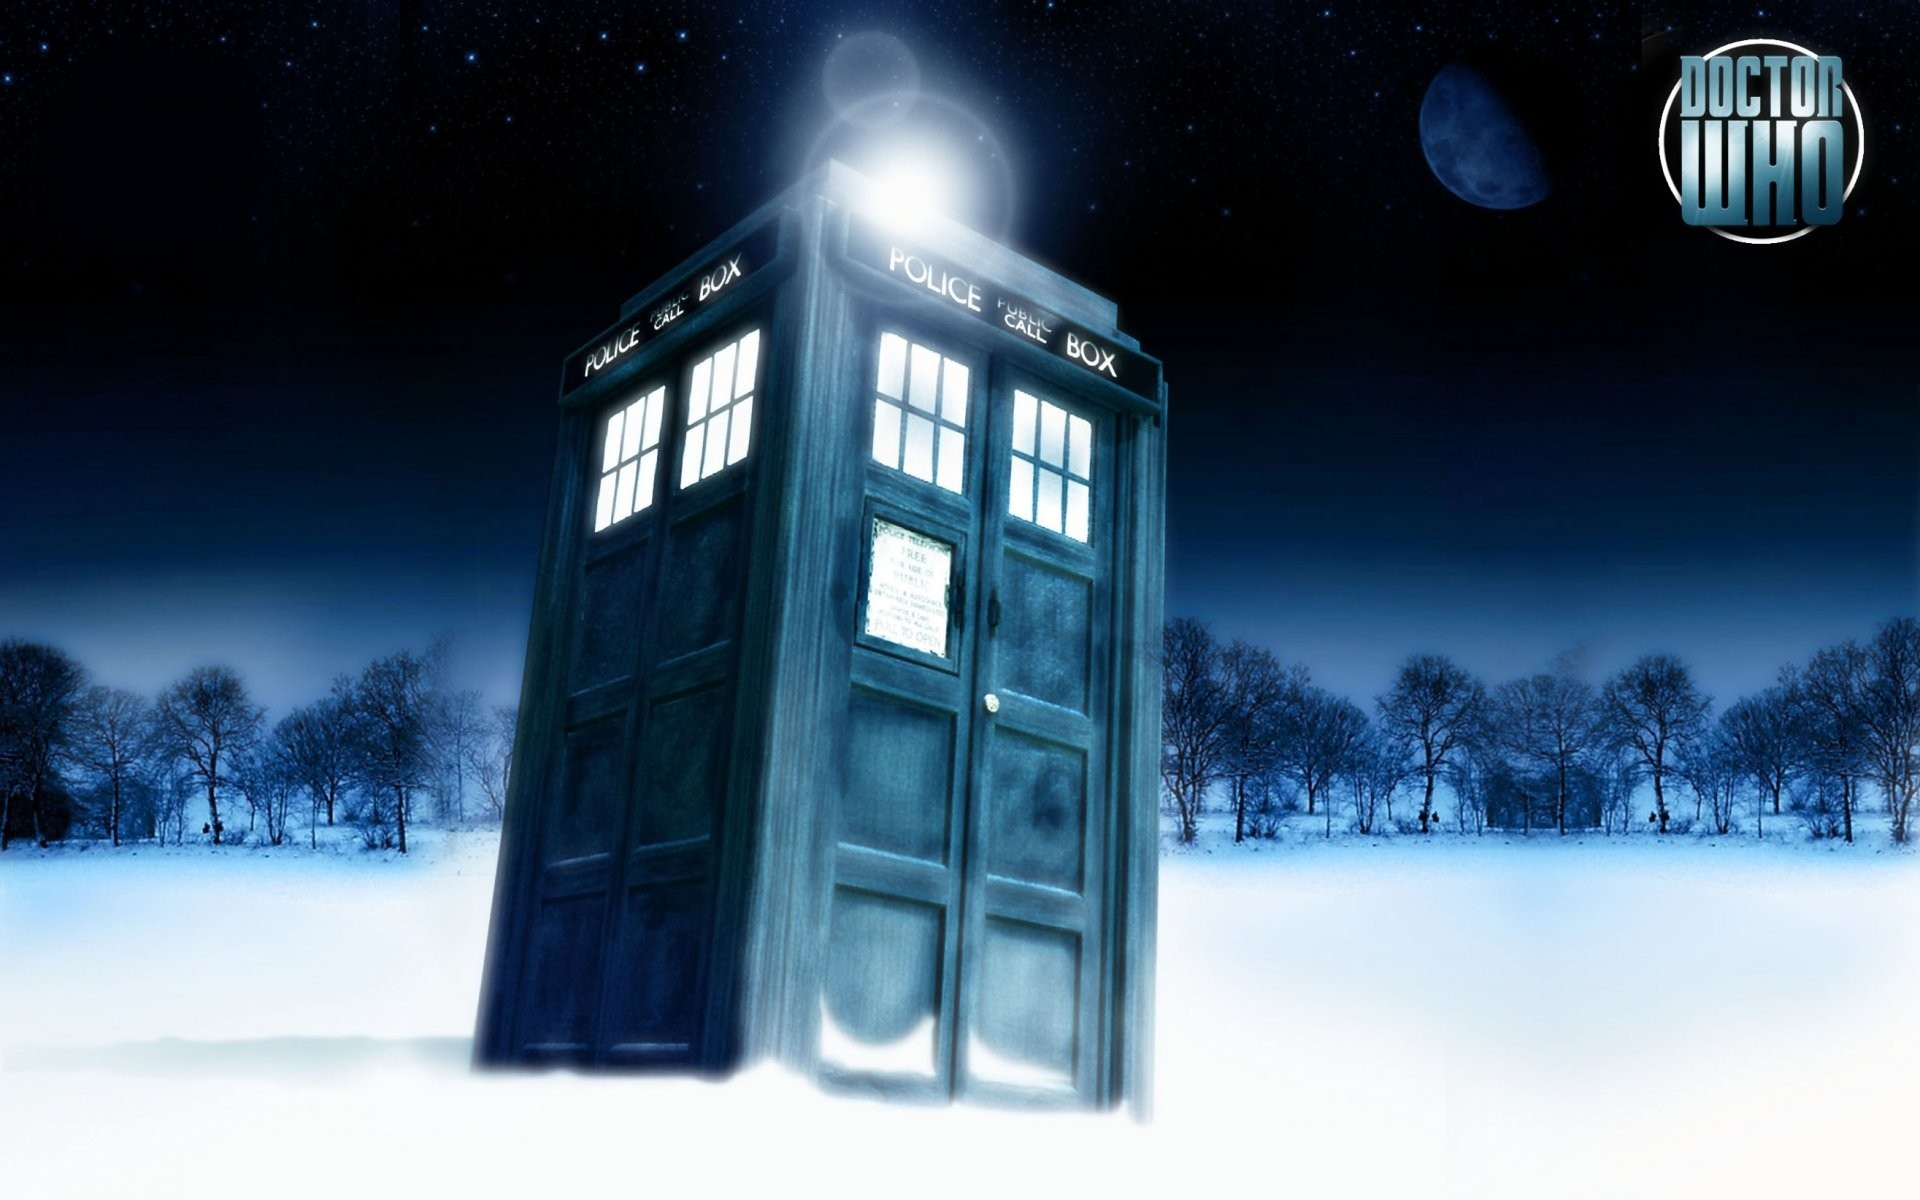 Doctor Who TARDIS Wallpapers HD Desktop and Mobile Backgrounds